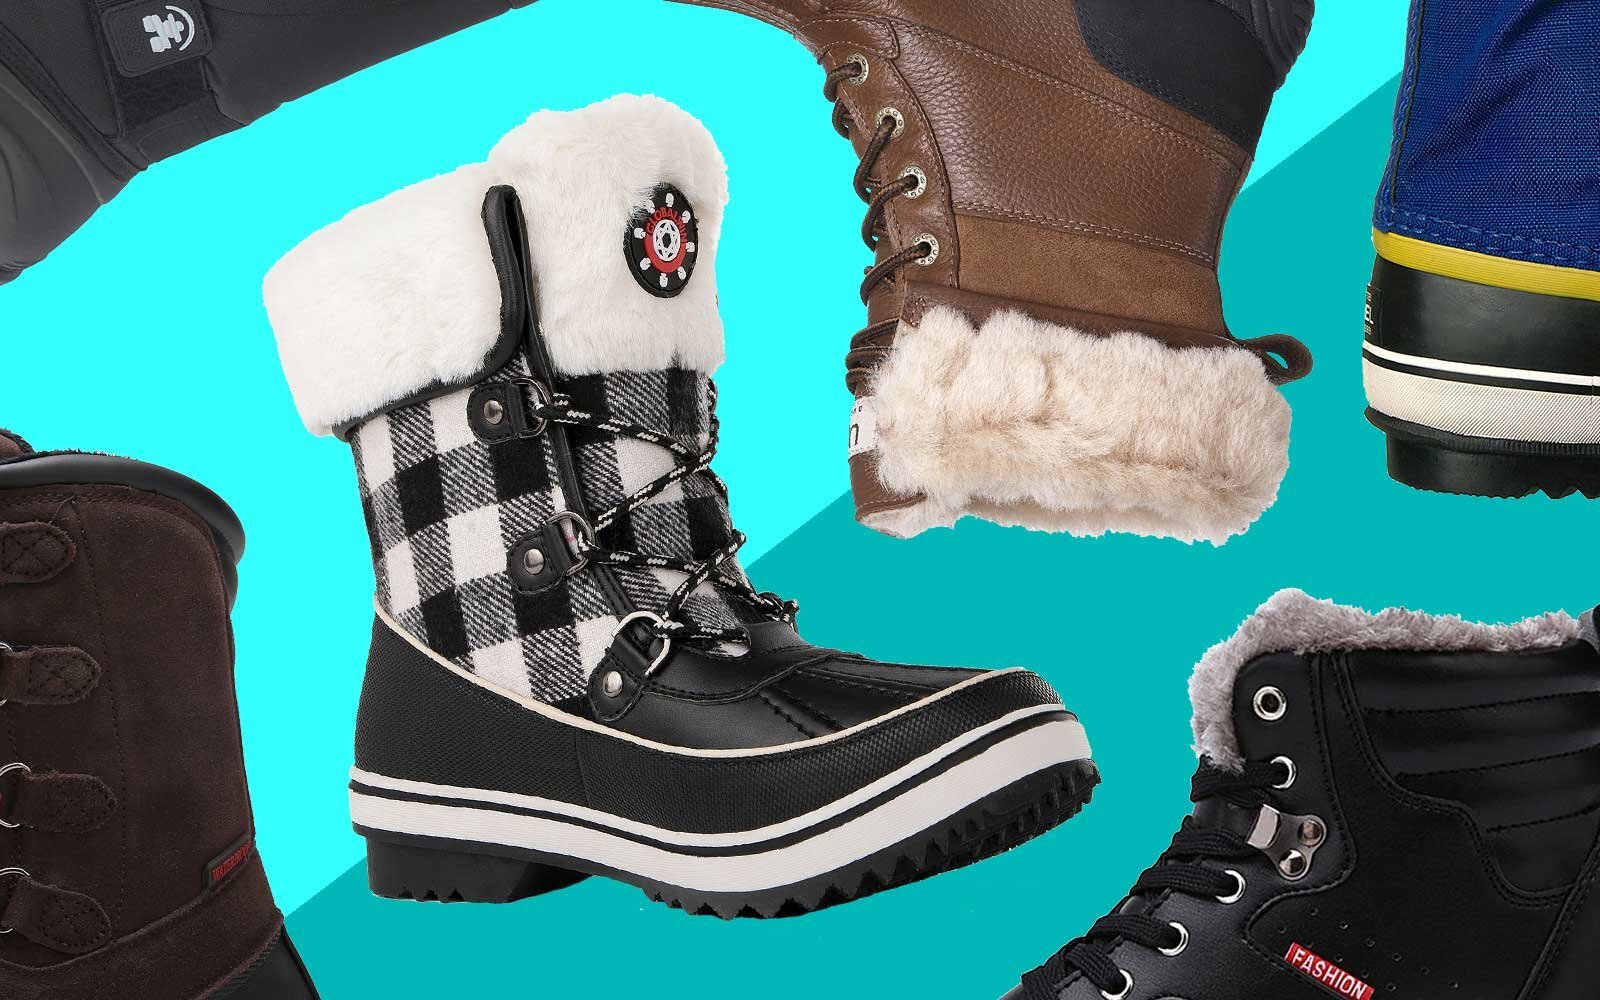 c3bfbc3efebd8 The Best Snow Boots You Can Get on Amazon | Travel + Leisure